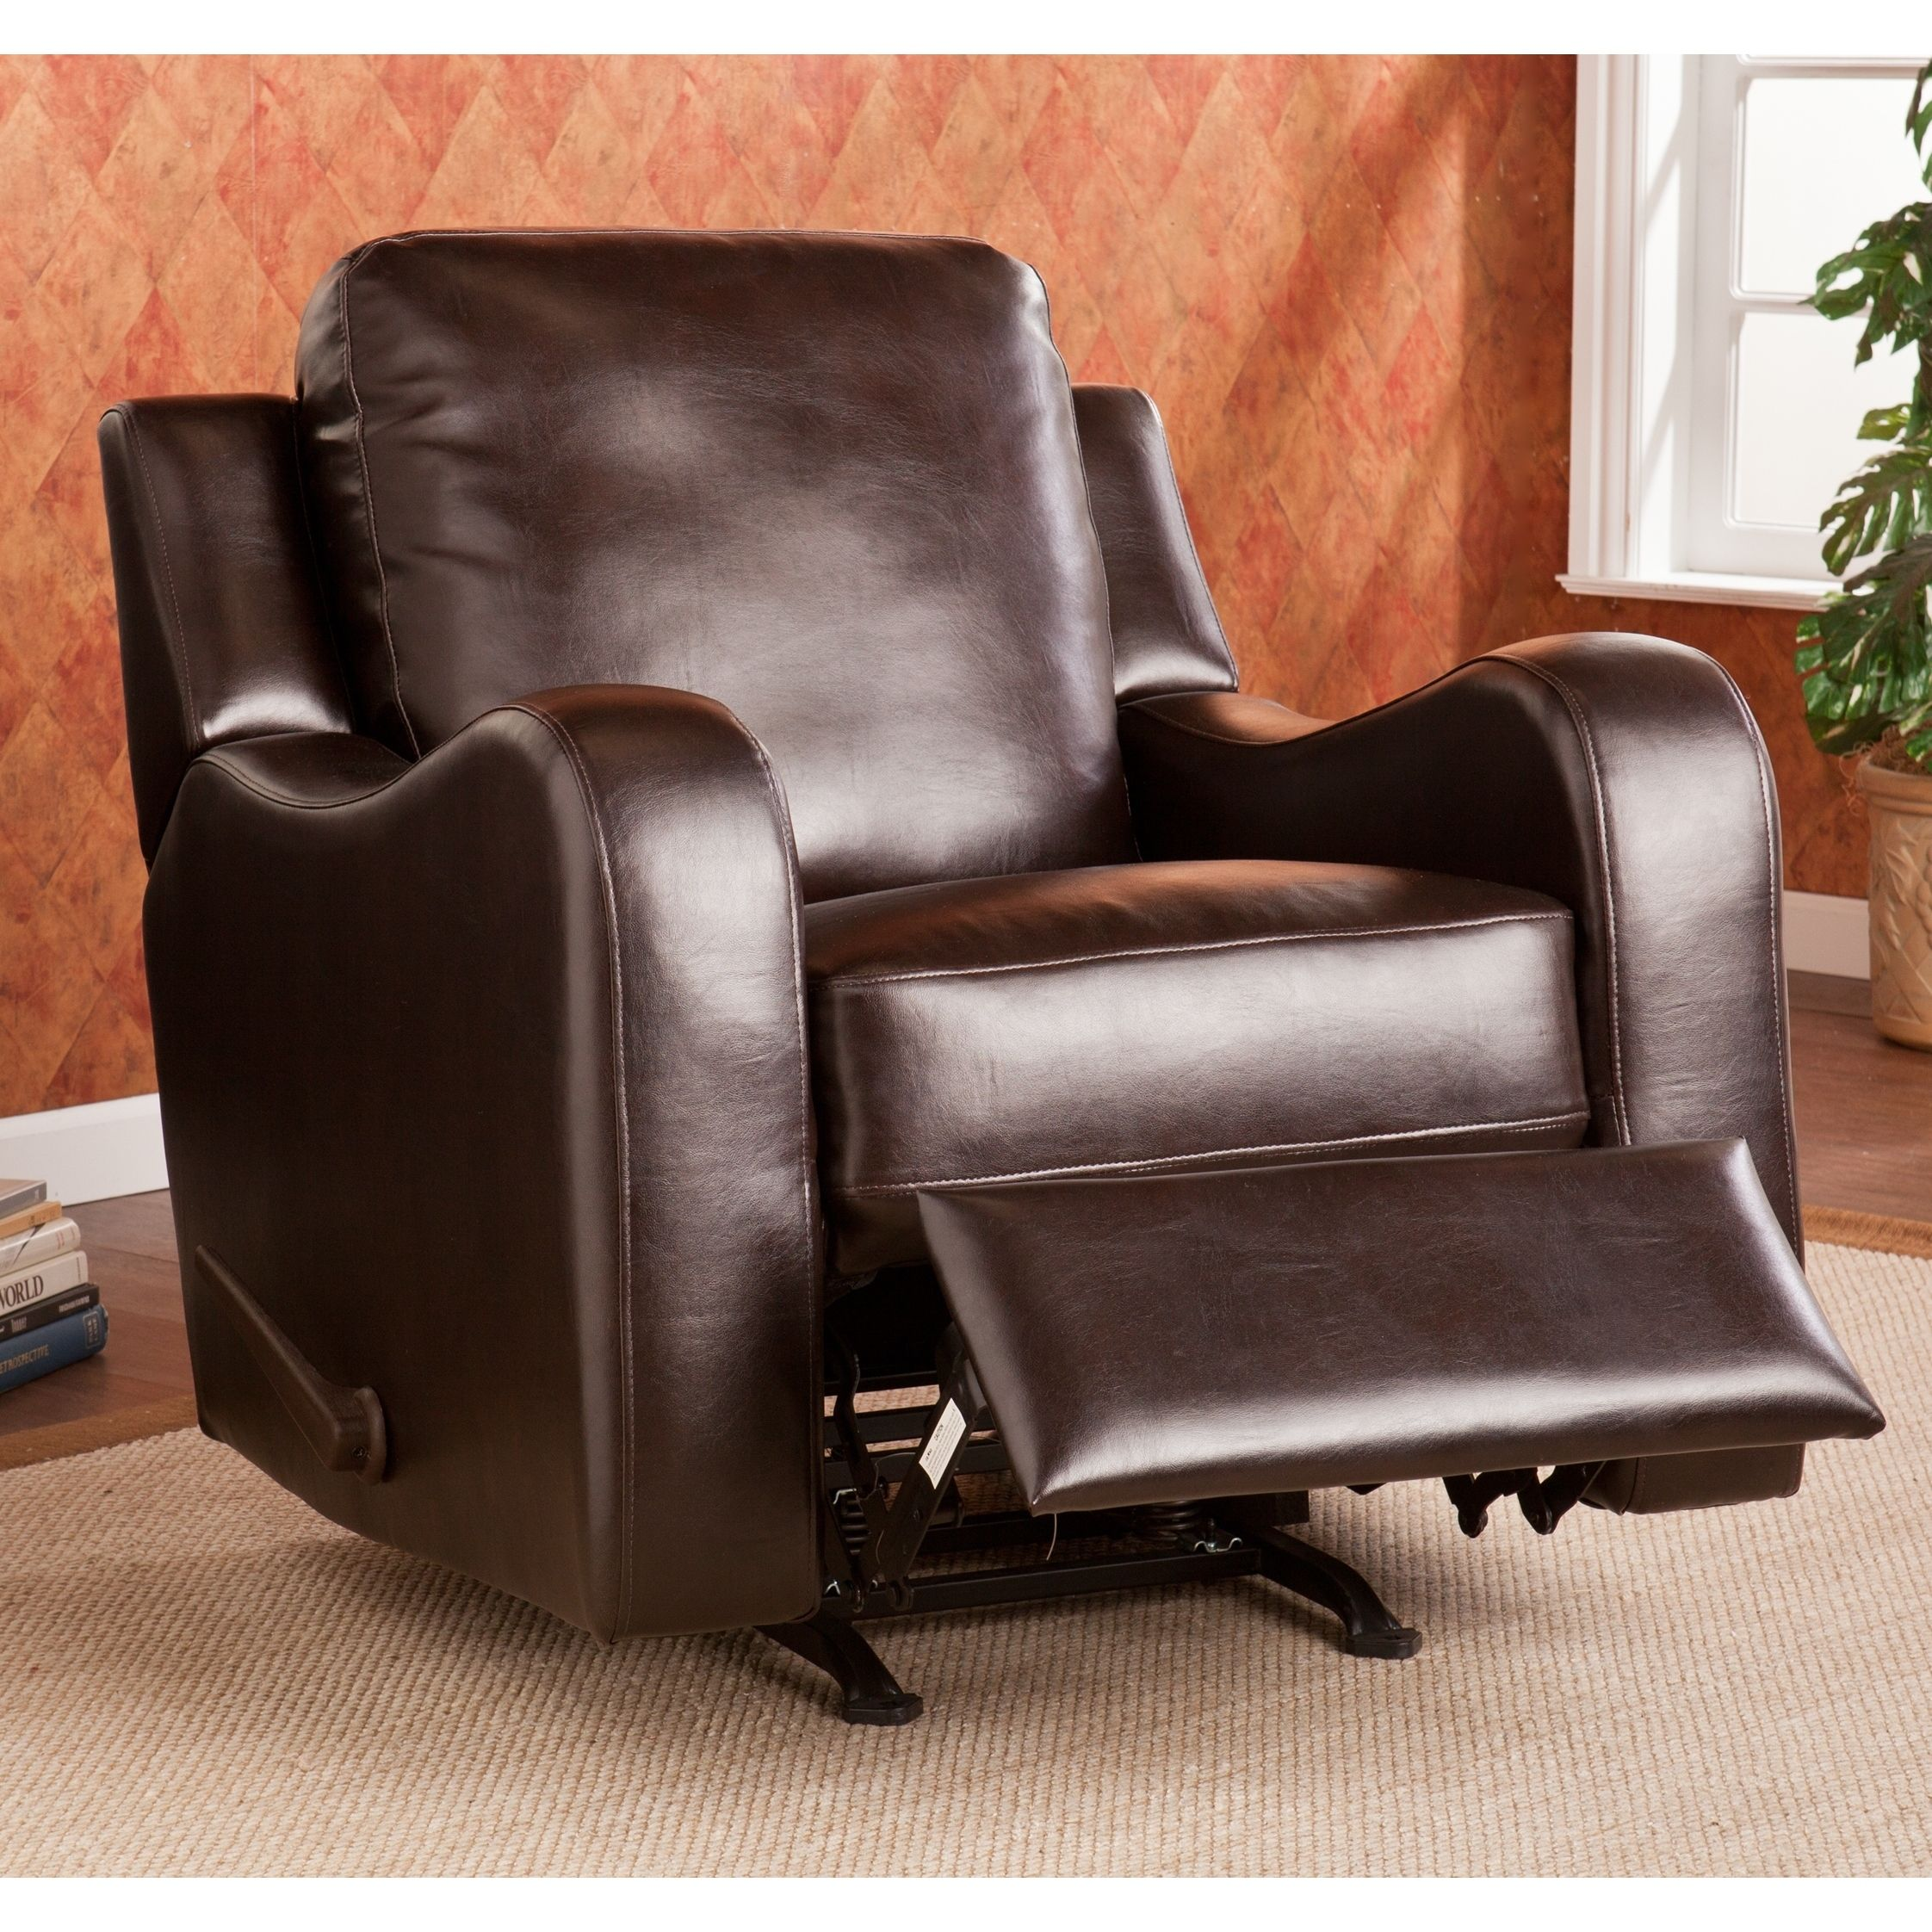 This Upton Home Monticello Chocolate Rocker/ Recliner Features Beautiful  Chocolate Bonded Leather And A Comfortable Design For Easy Lounging. This U2026